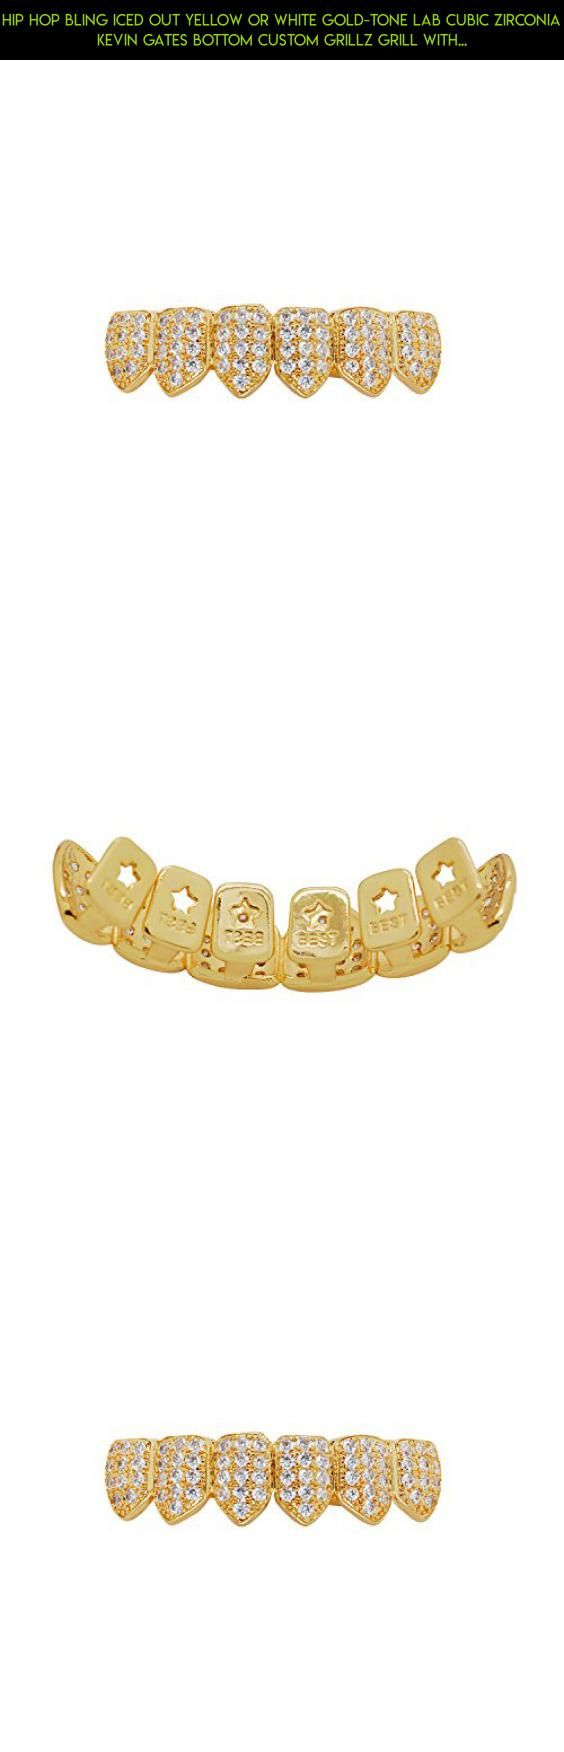 Hip Hop Bling Iced Out Yellow or White Gold-Tone Lab Cubic Zirconia Kevin Gates Bottom Custom Grillz Grill with Mold Bar (Yellow-Gold-Tone) #technology #gadgets #kit #out #drone #shopping #fpv #parts #tech #iced #racing #grills #products #camera #plans